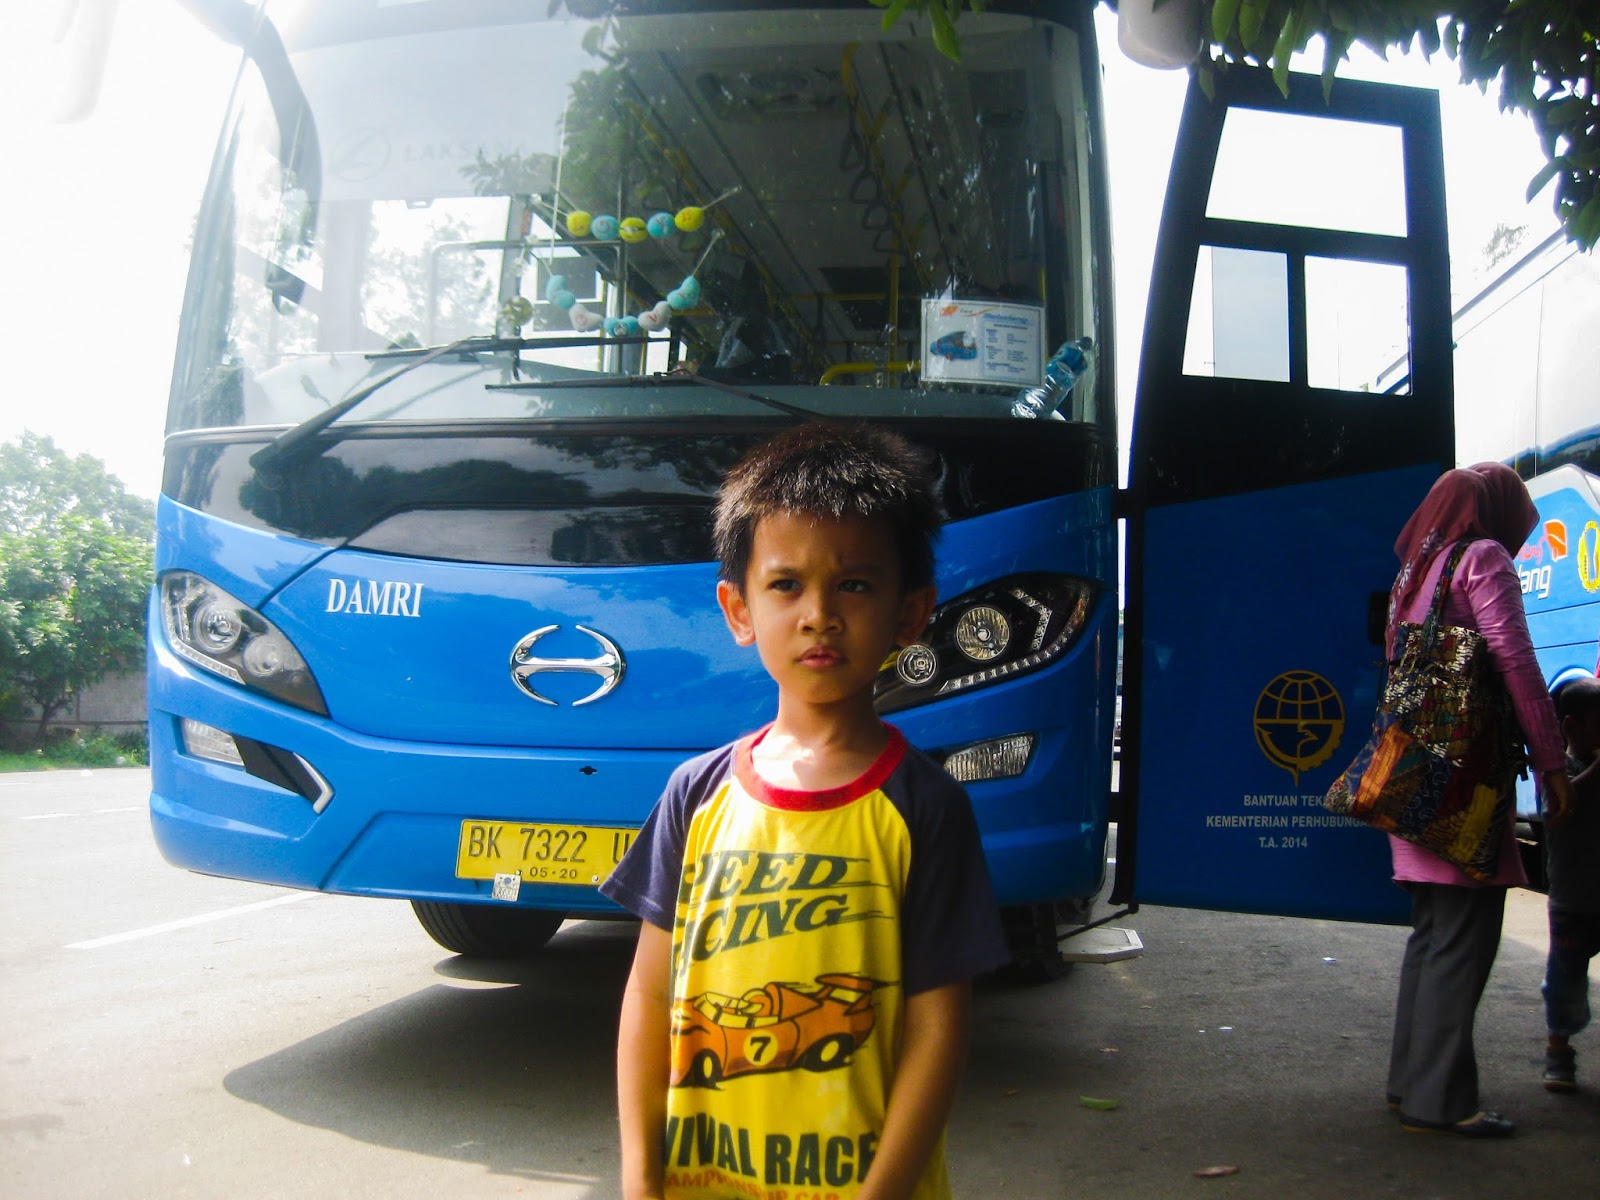 sweet experience to spend the weekend on the Bus Damri